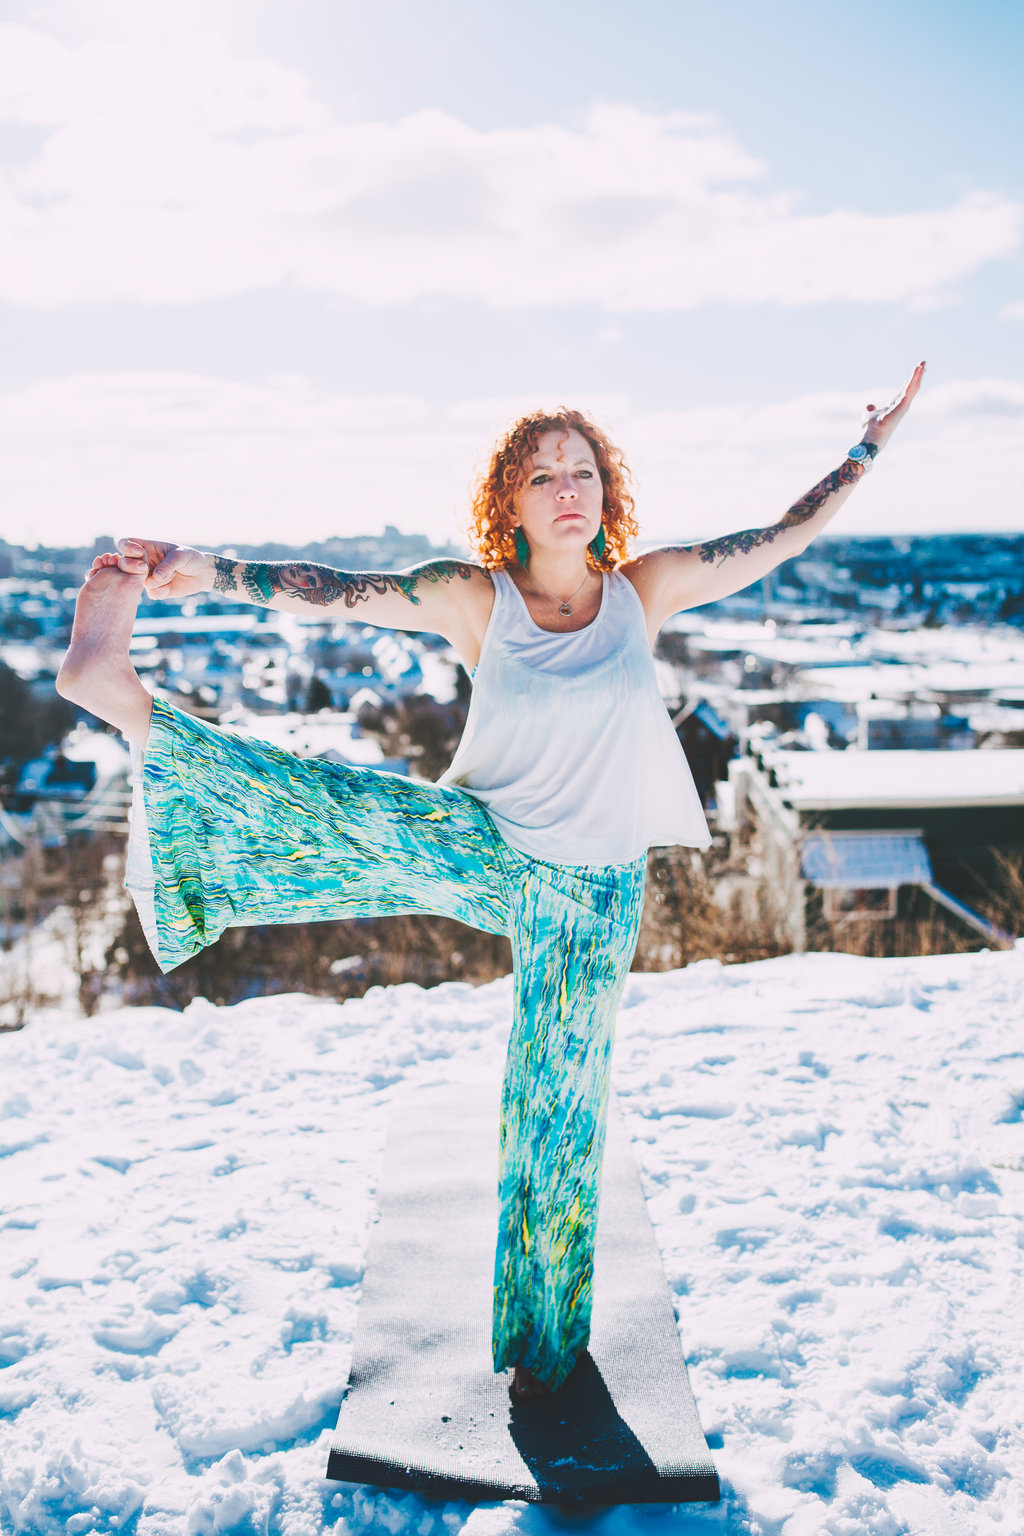 The yoga will get to you, and when it does, you want to share it